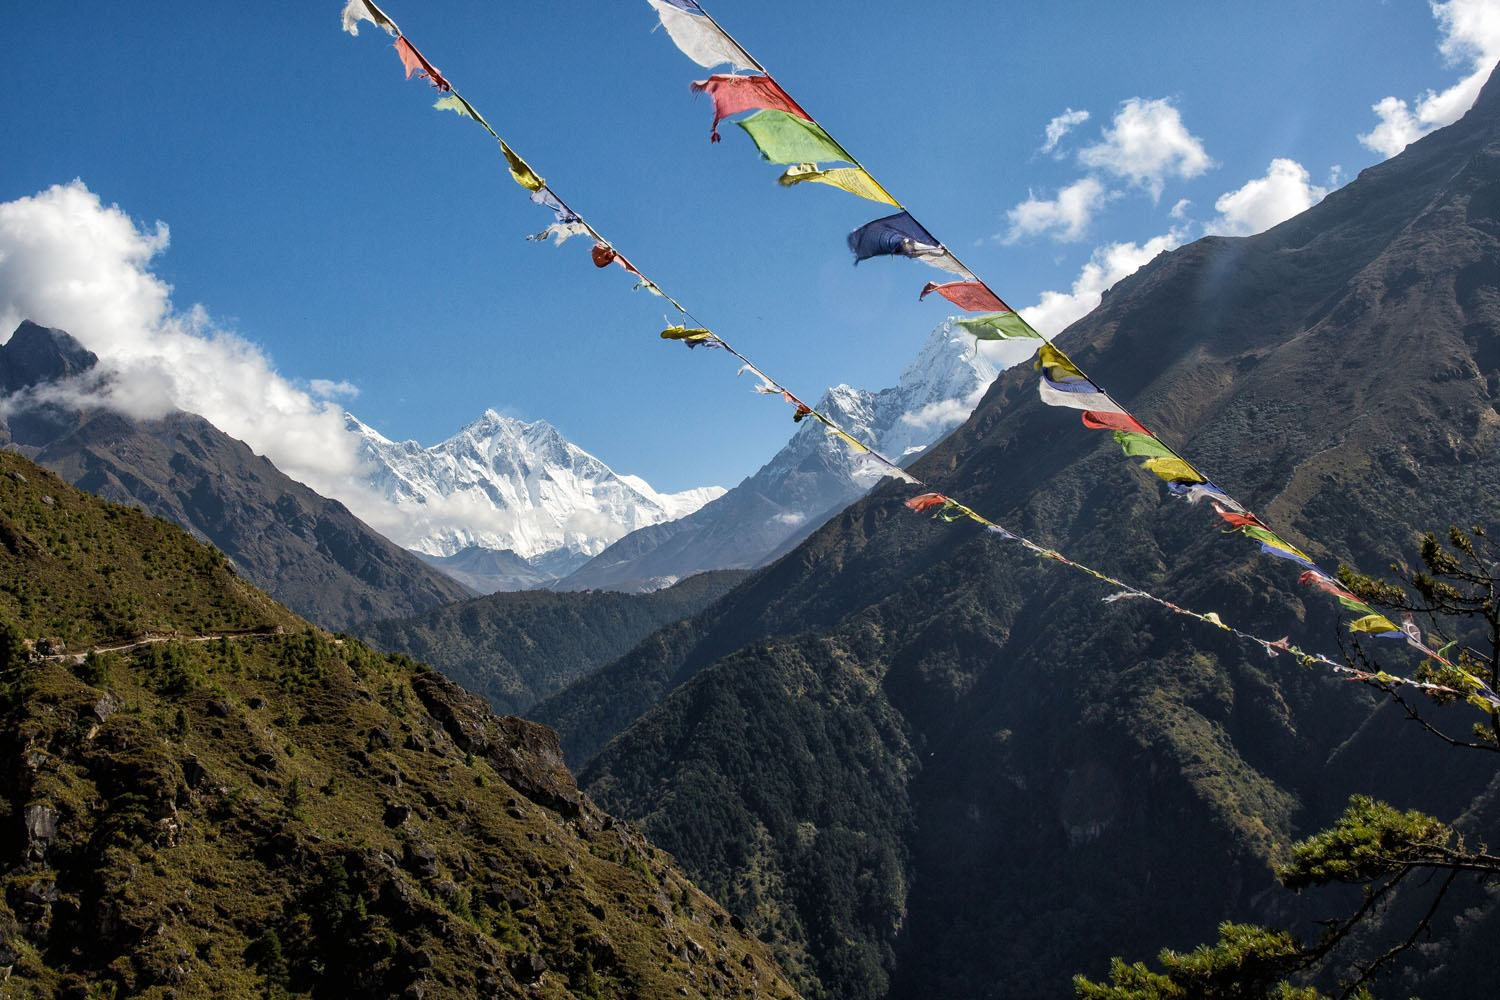 Prayer Flags in the Himalayas